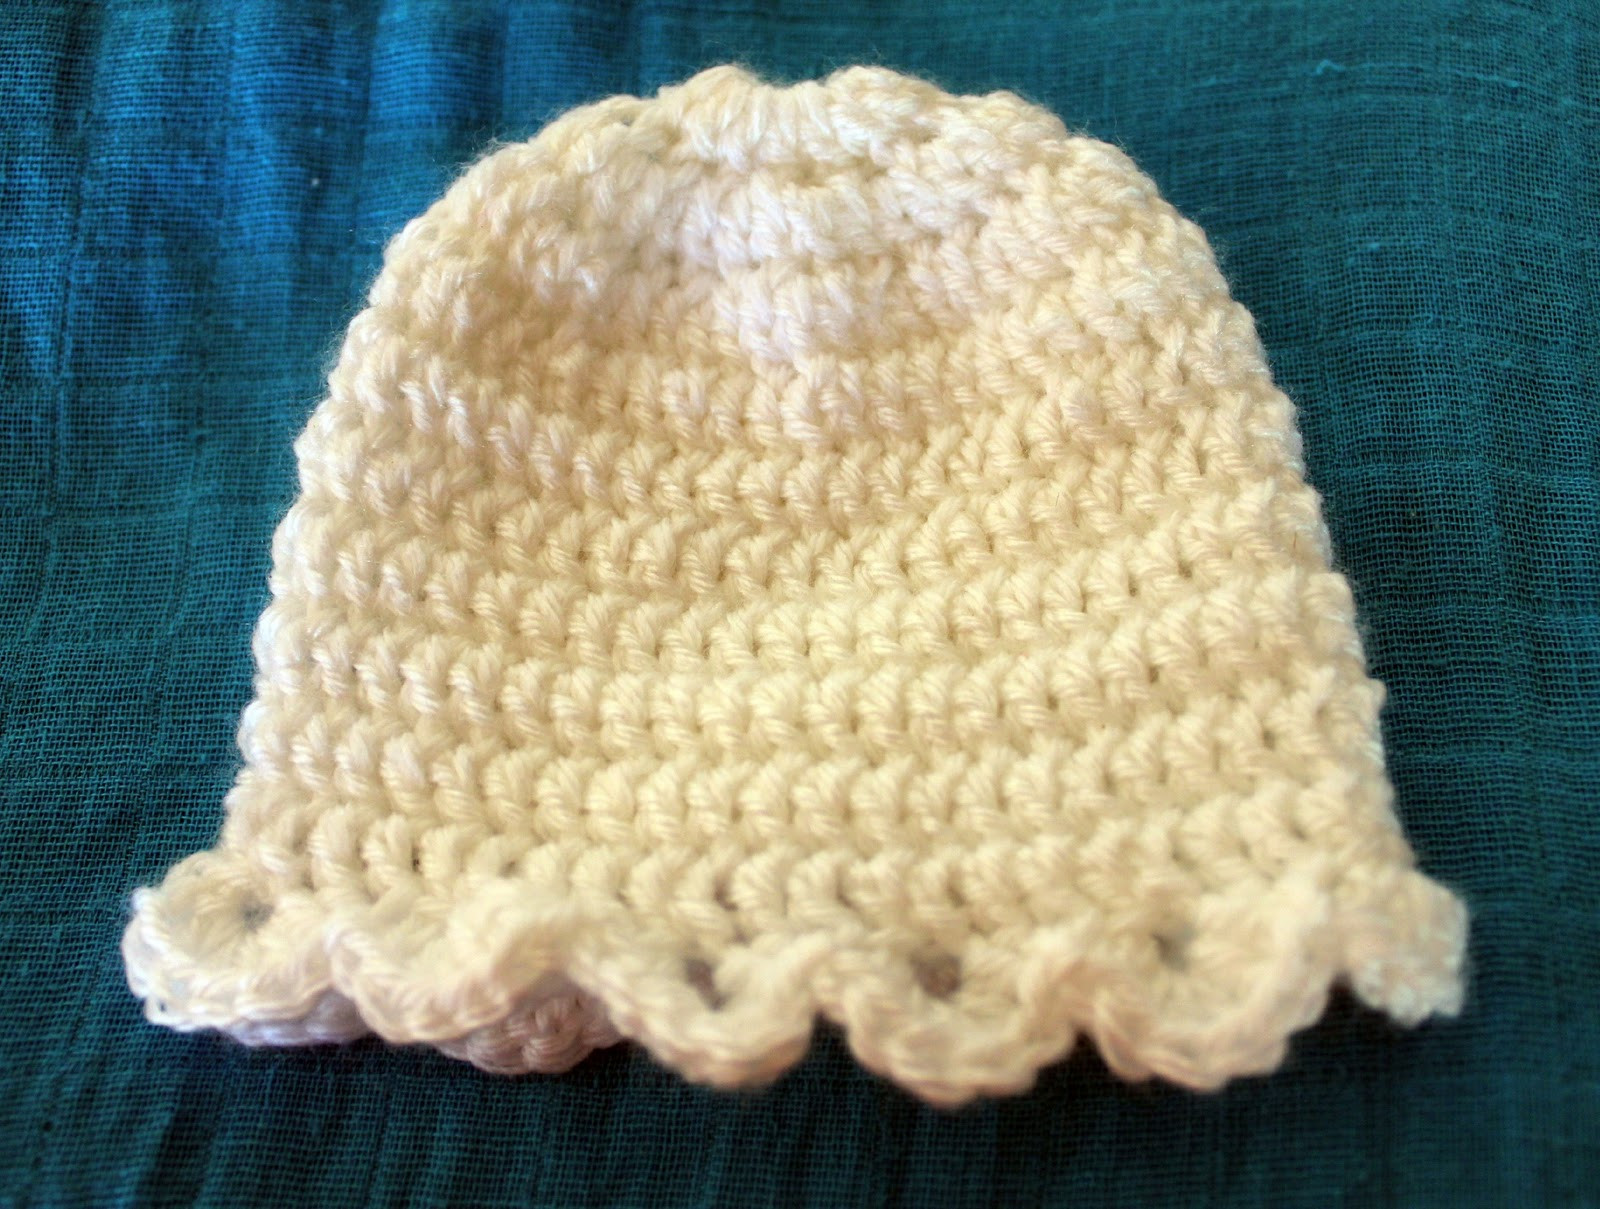 Newborn Crochet Patterns Elegant Newborn Crochet Beanie Pattern Of Incredible 41 Ideas Newborn Crochet Patterns